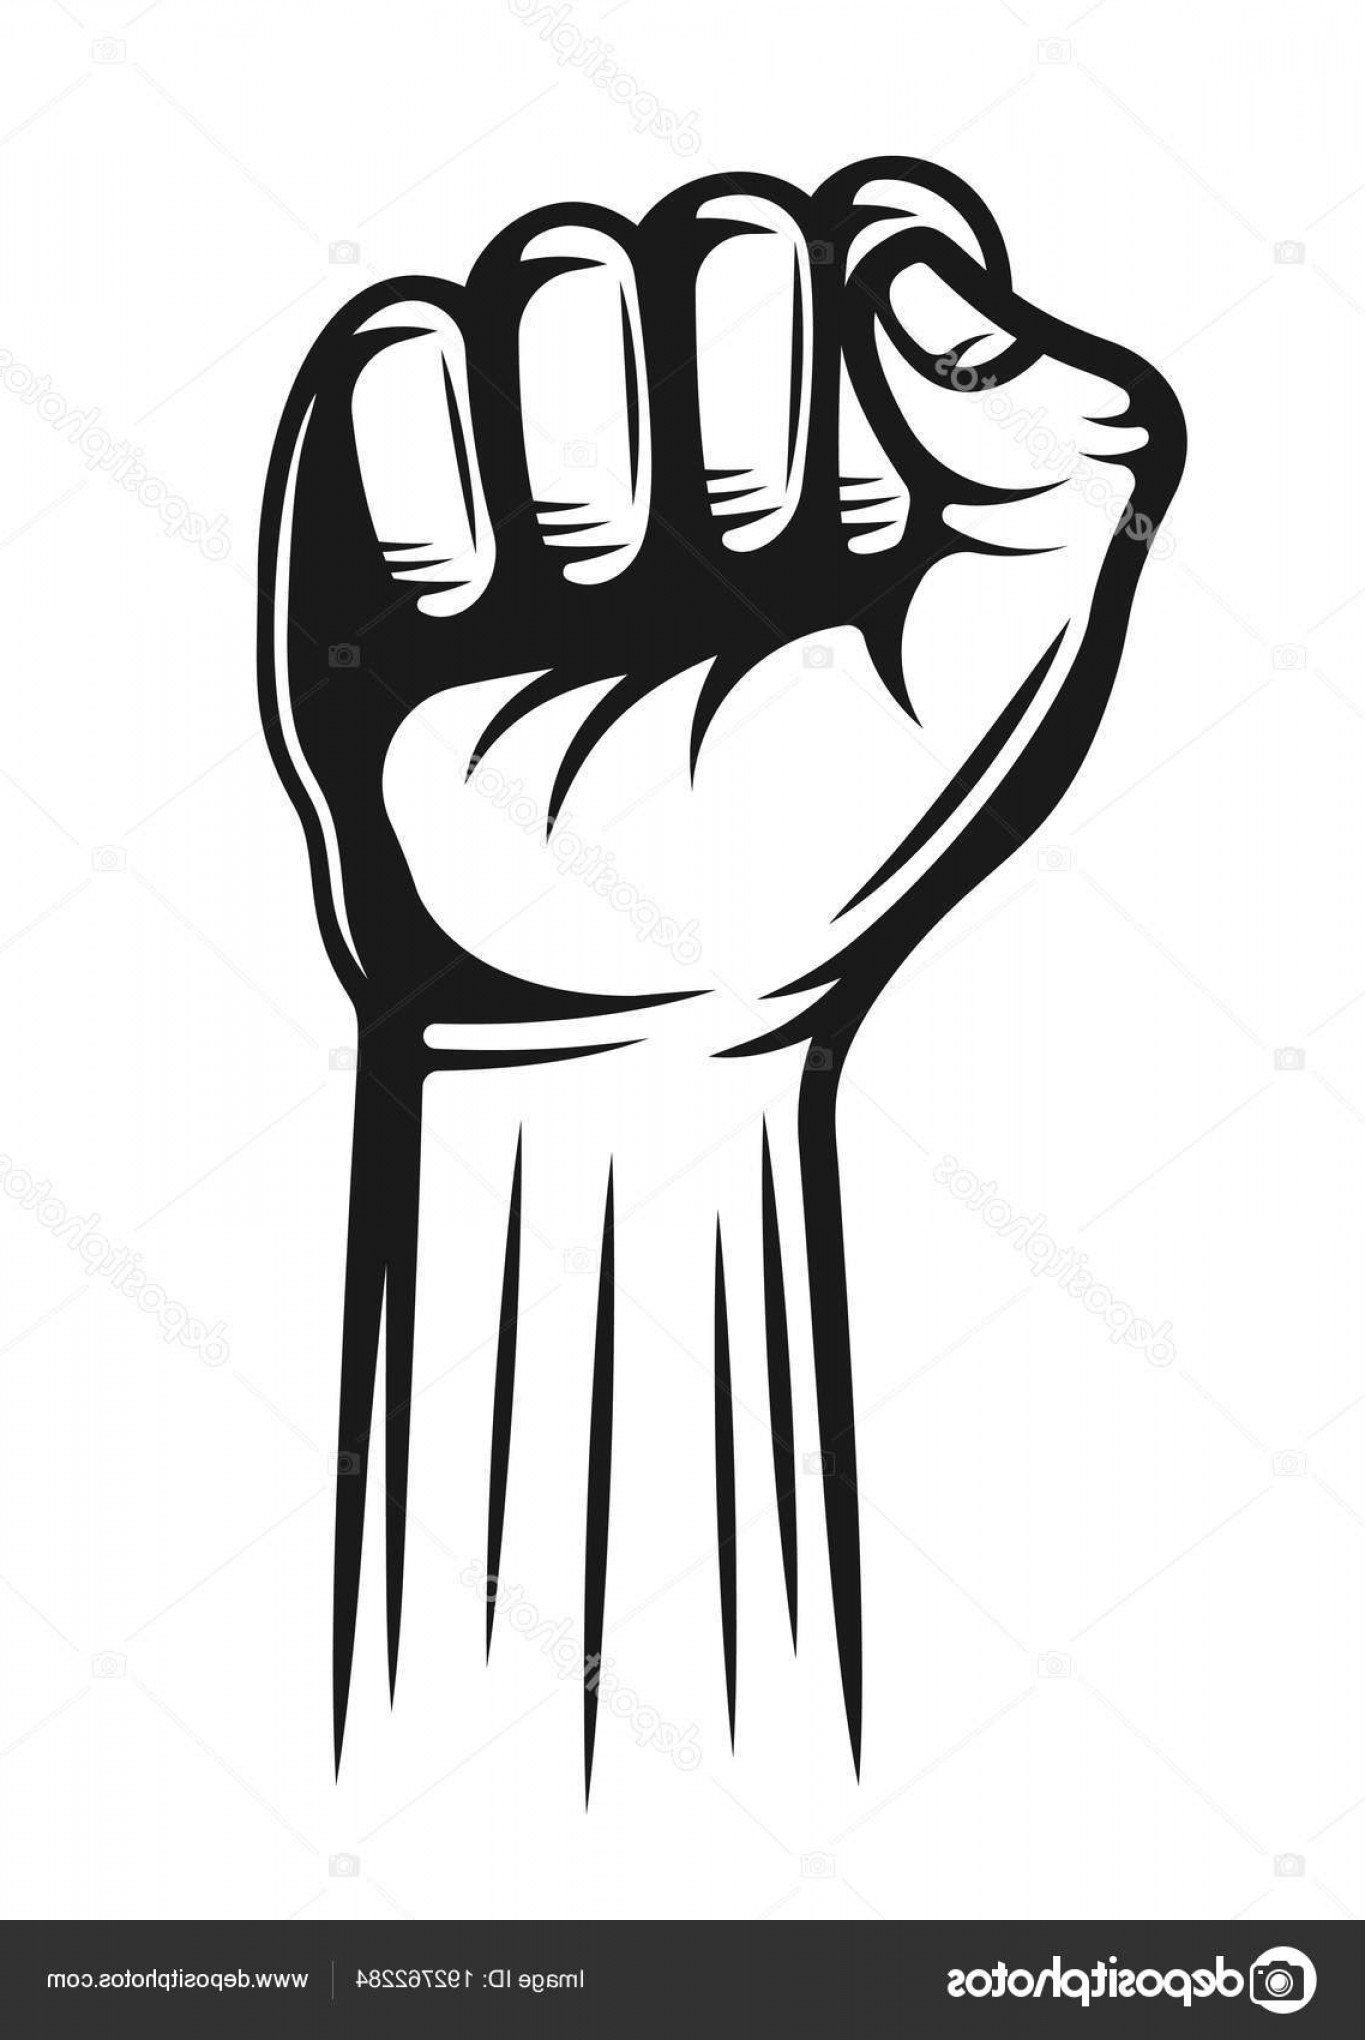 Hand Fist Vector: Stock Illustration Hand With Fingers Folded Into